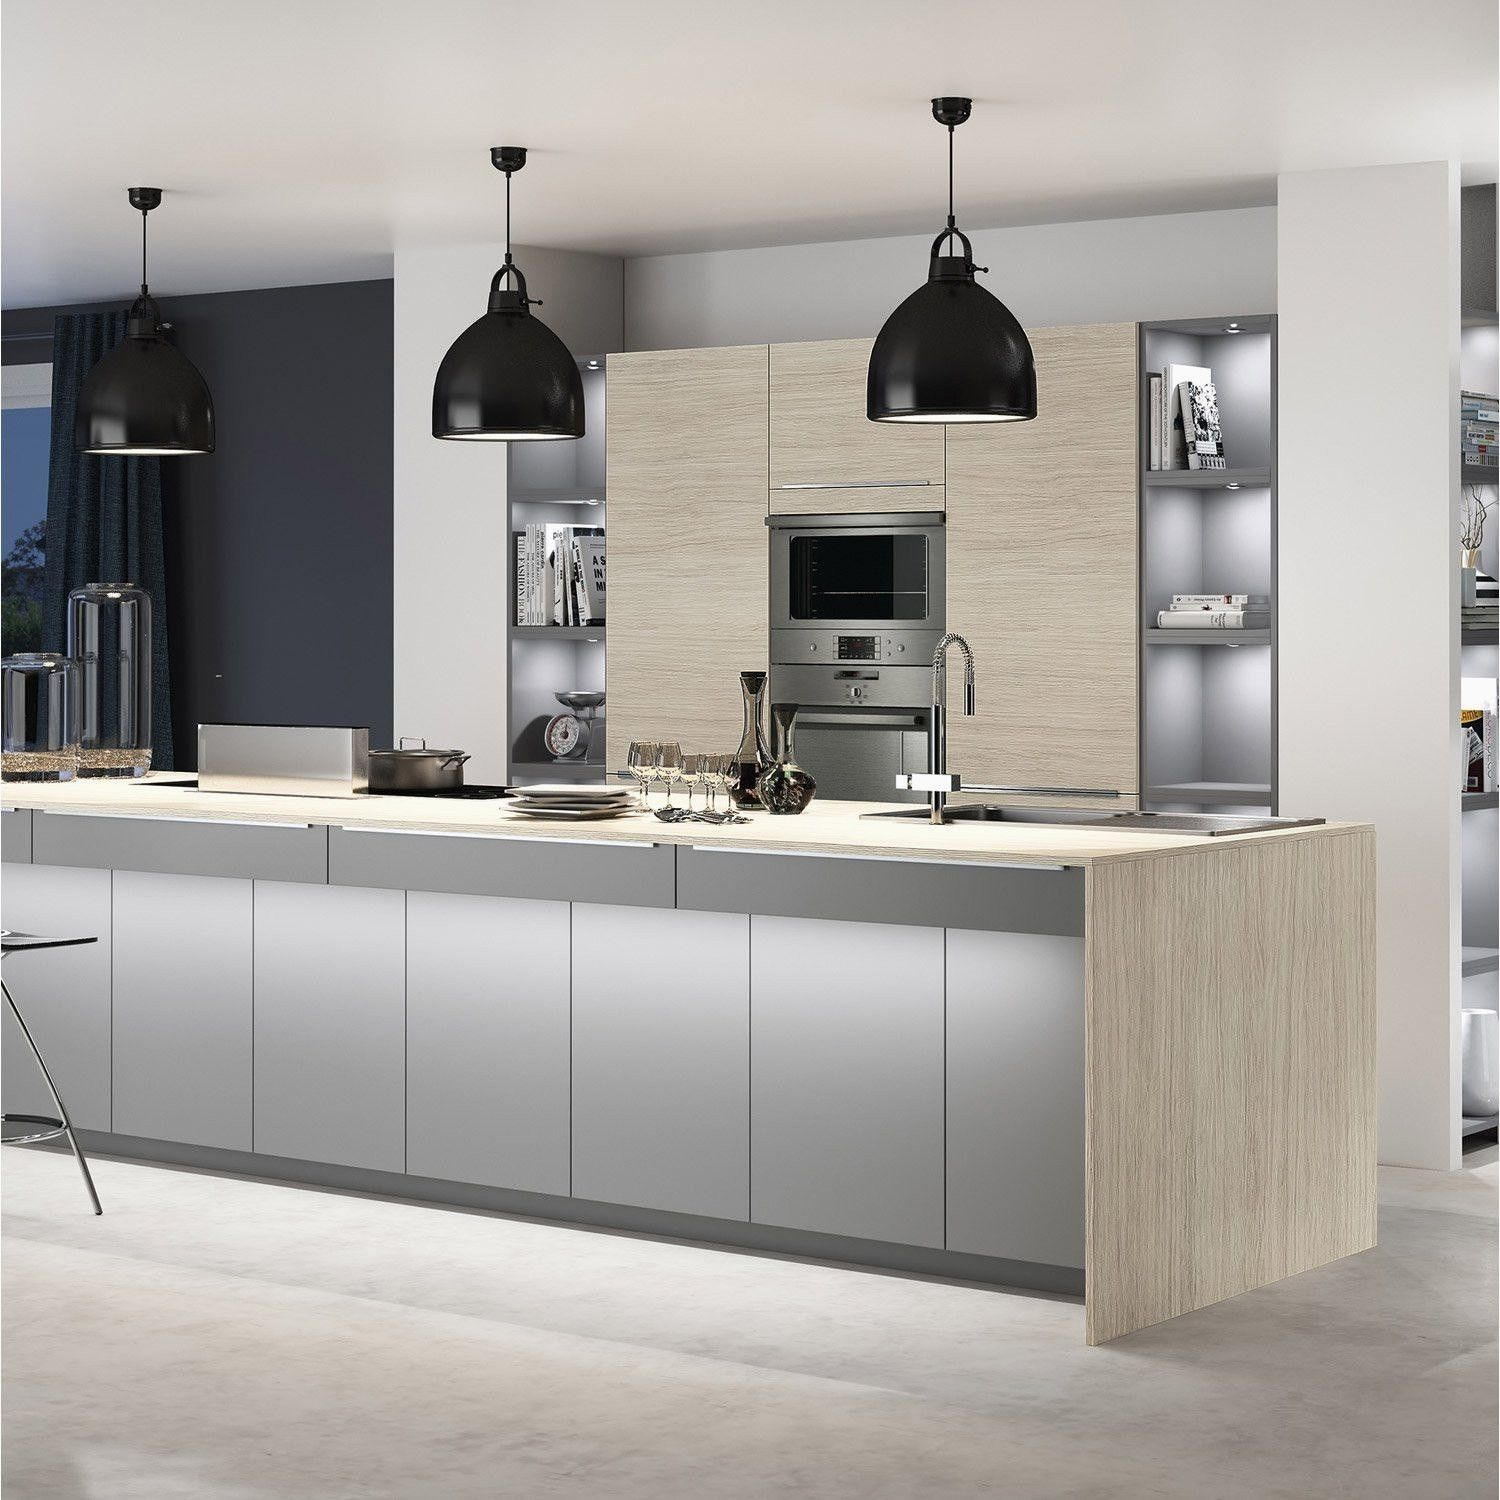 Lovely Pose De Cuisine Leroy Merlin Kitchen Remodel Kitchen Design Kitchen